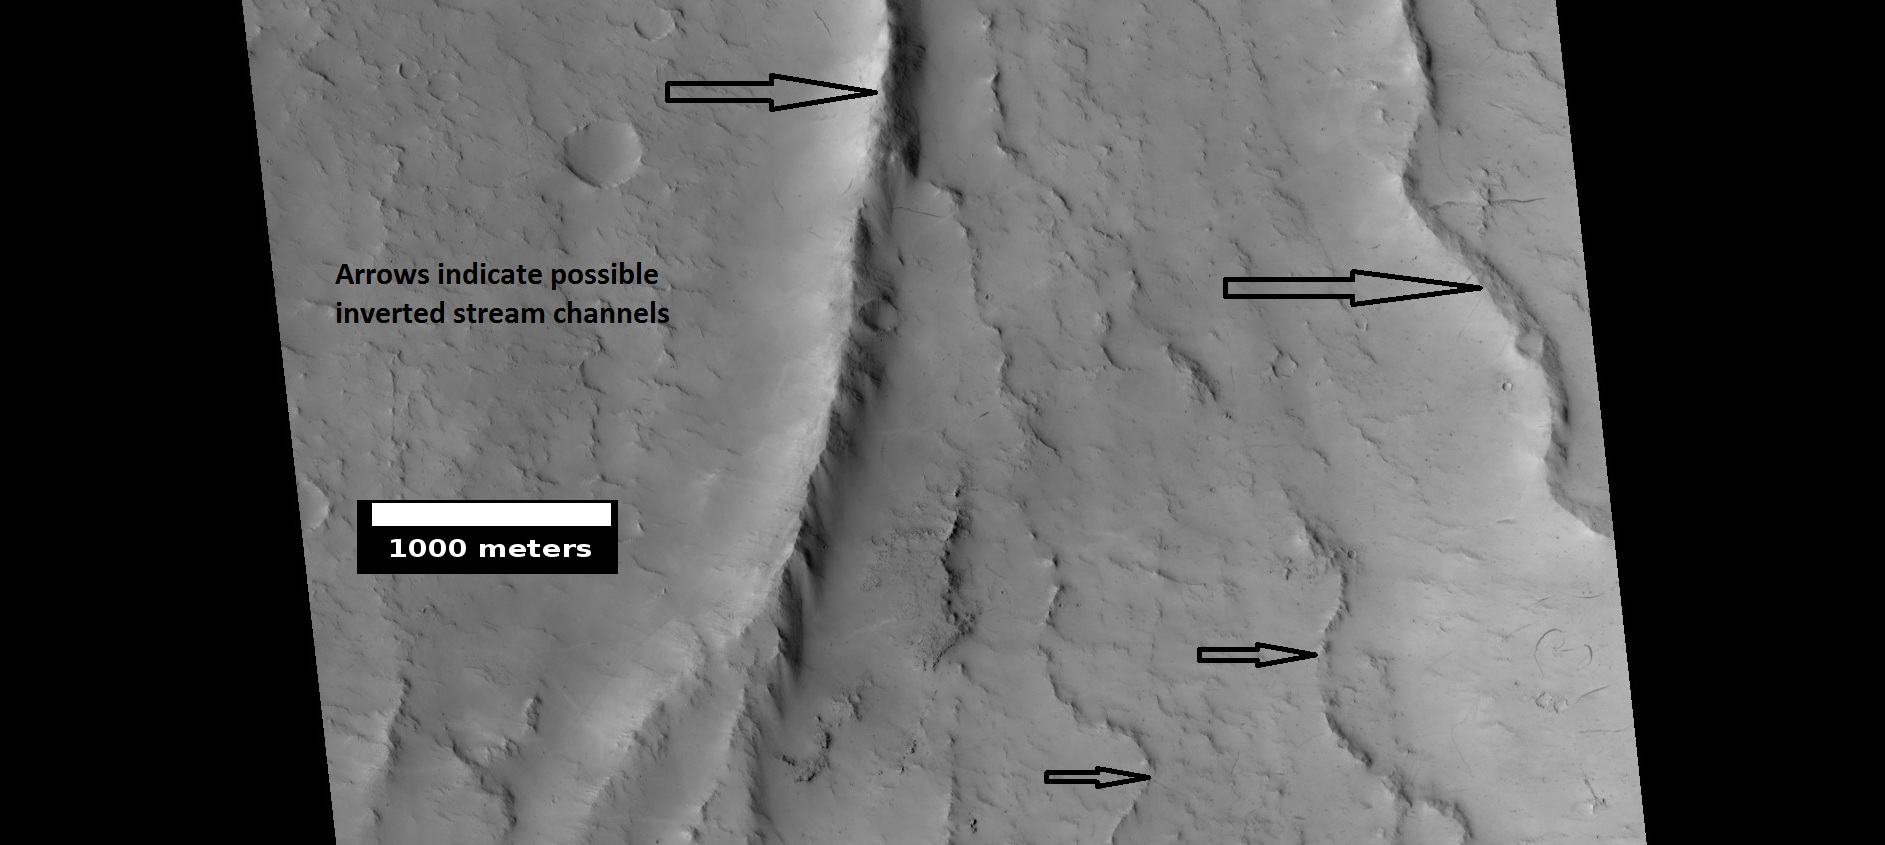 Possible inverted stream channels in Phlegra Dorsa region, as seen by HiRISE under HiWish program. The ridges were probably once stream valleys that have become full of sediment and cemented. So, they became hardened against erosion which removed surrounding material.